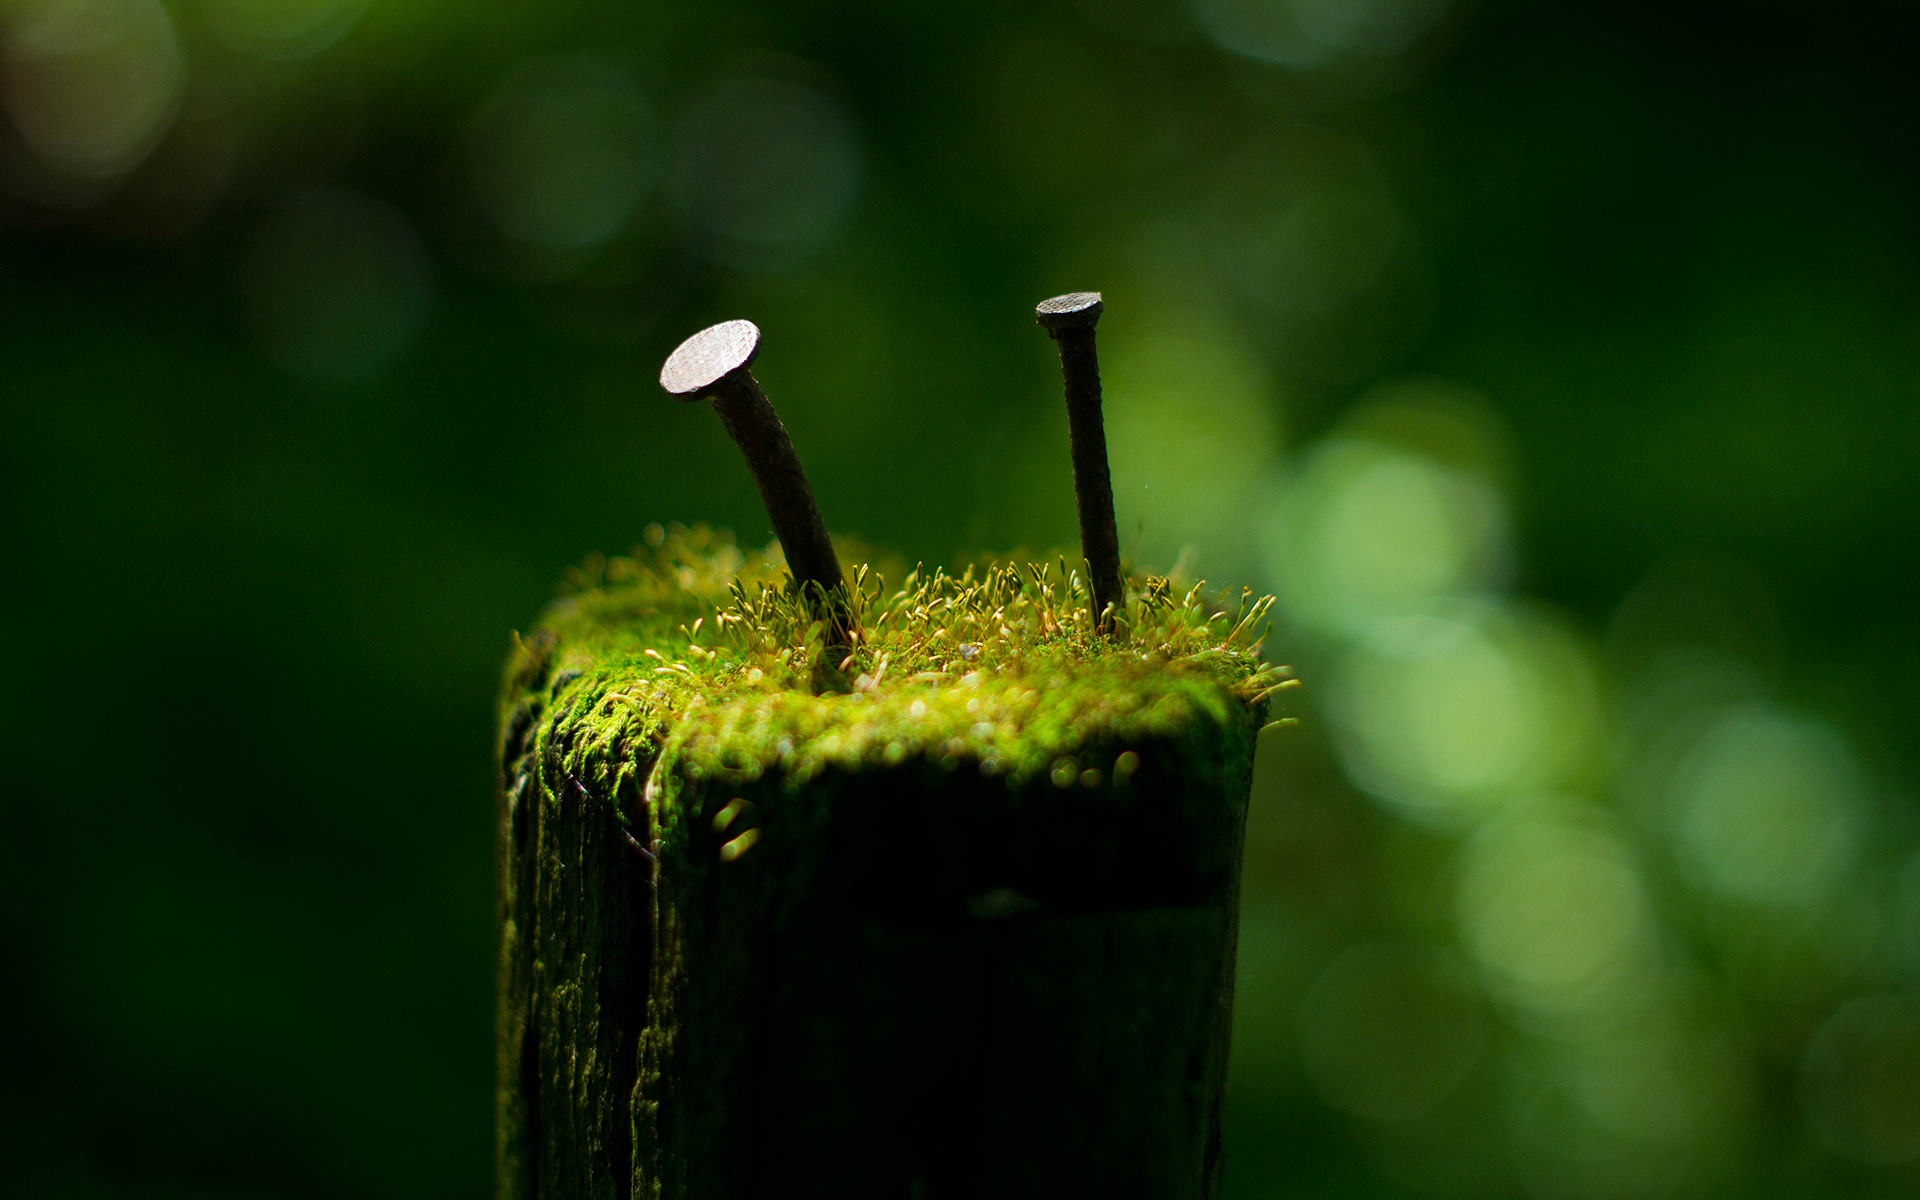 green abstract images